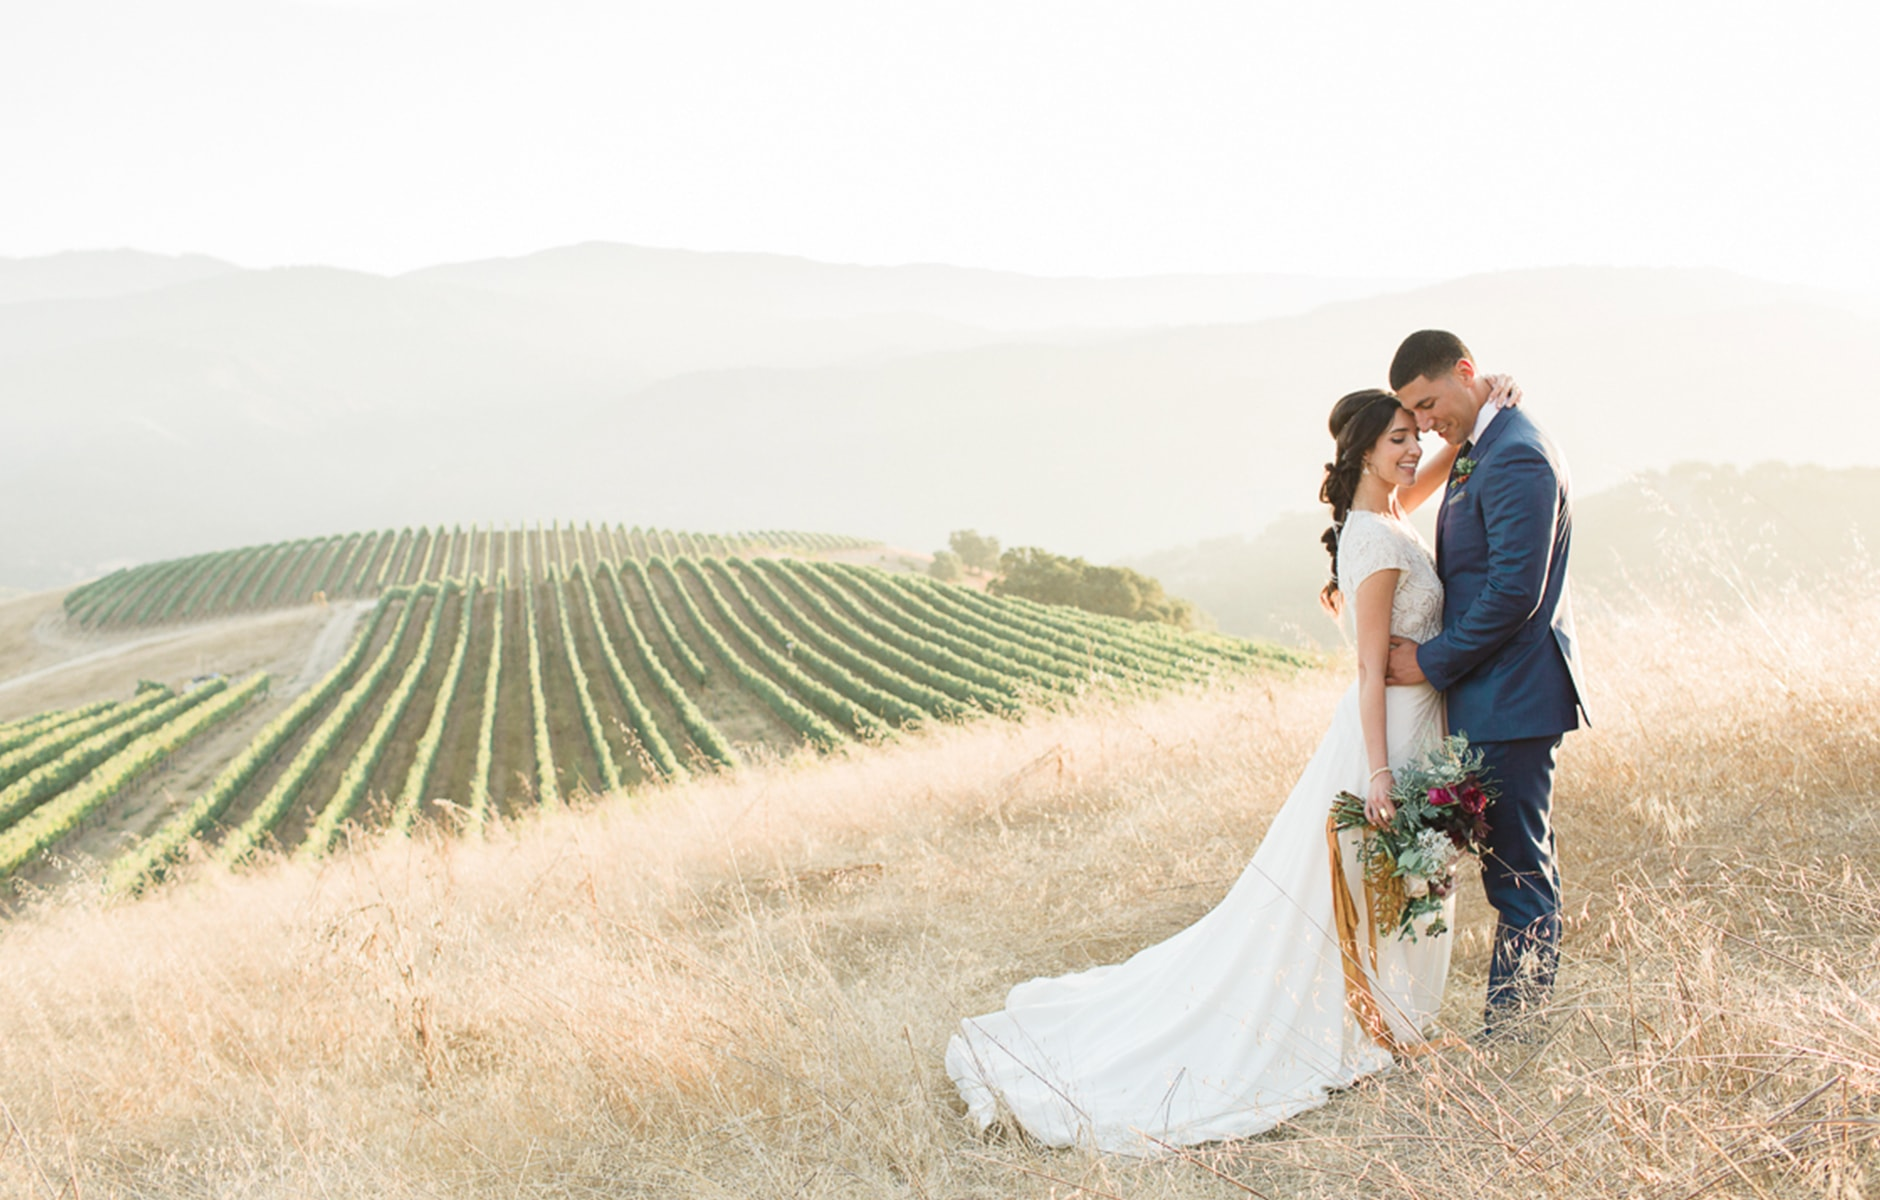 Minted Real Weddings: Megan and Jason - 11